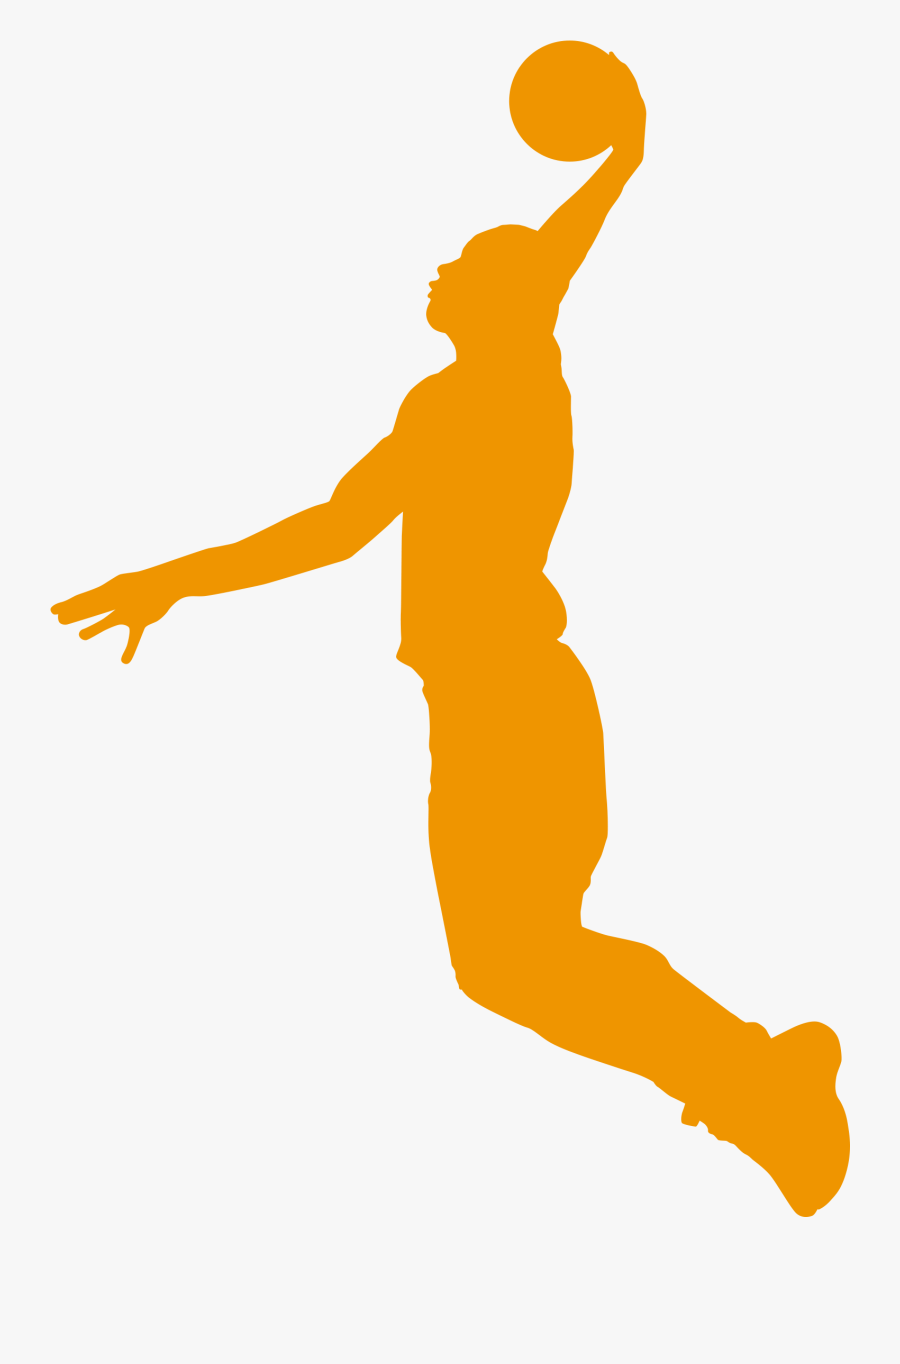 Slam Dunk Silhouette At Getdrawings - Transparent Background Basketball Player Basketball, Transparent Clipart